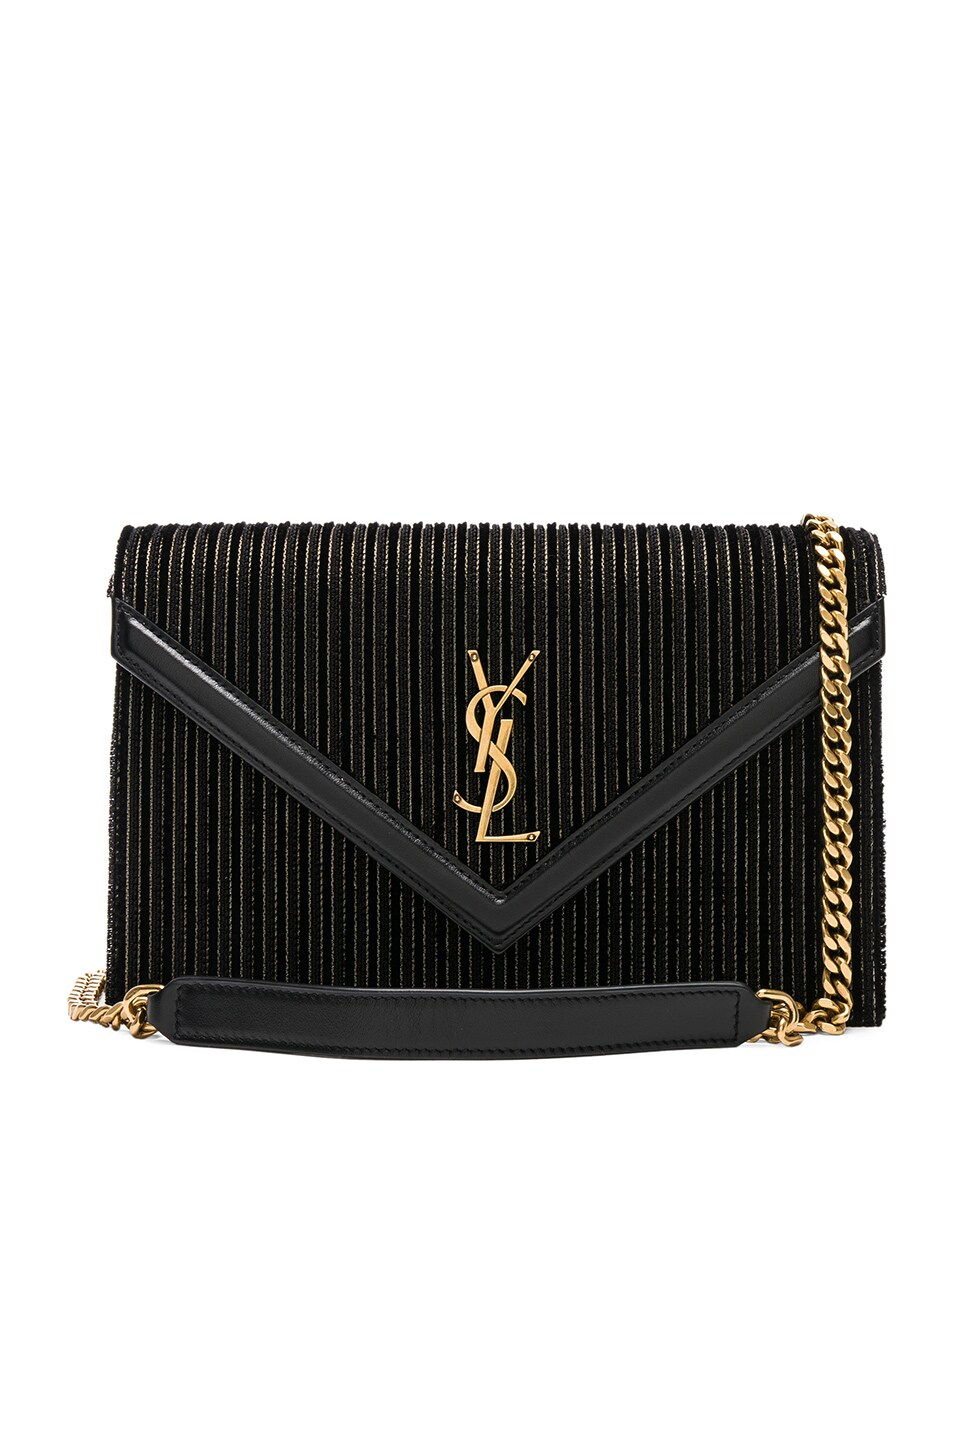 Image 1 of Saint Laurent Velvet & Leather Monogramme Le Sept Chain Bag in Black, Gold & Silver